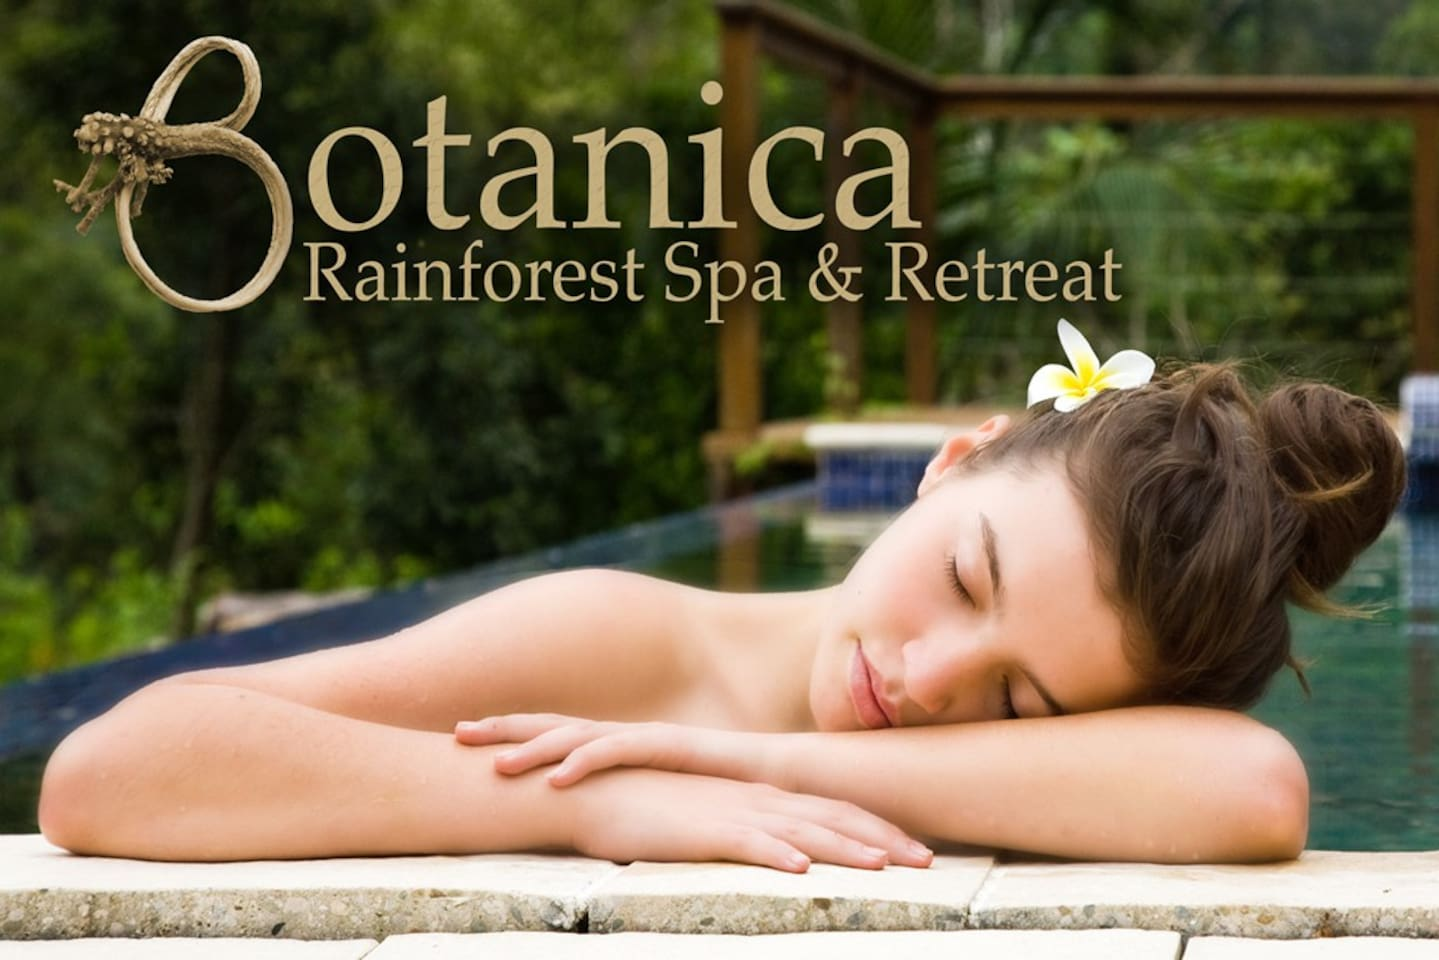 Botanica Rainforest Spa & Retreat